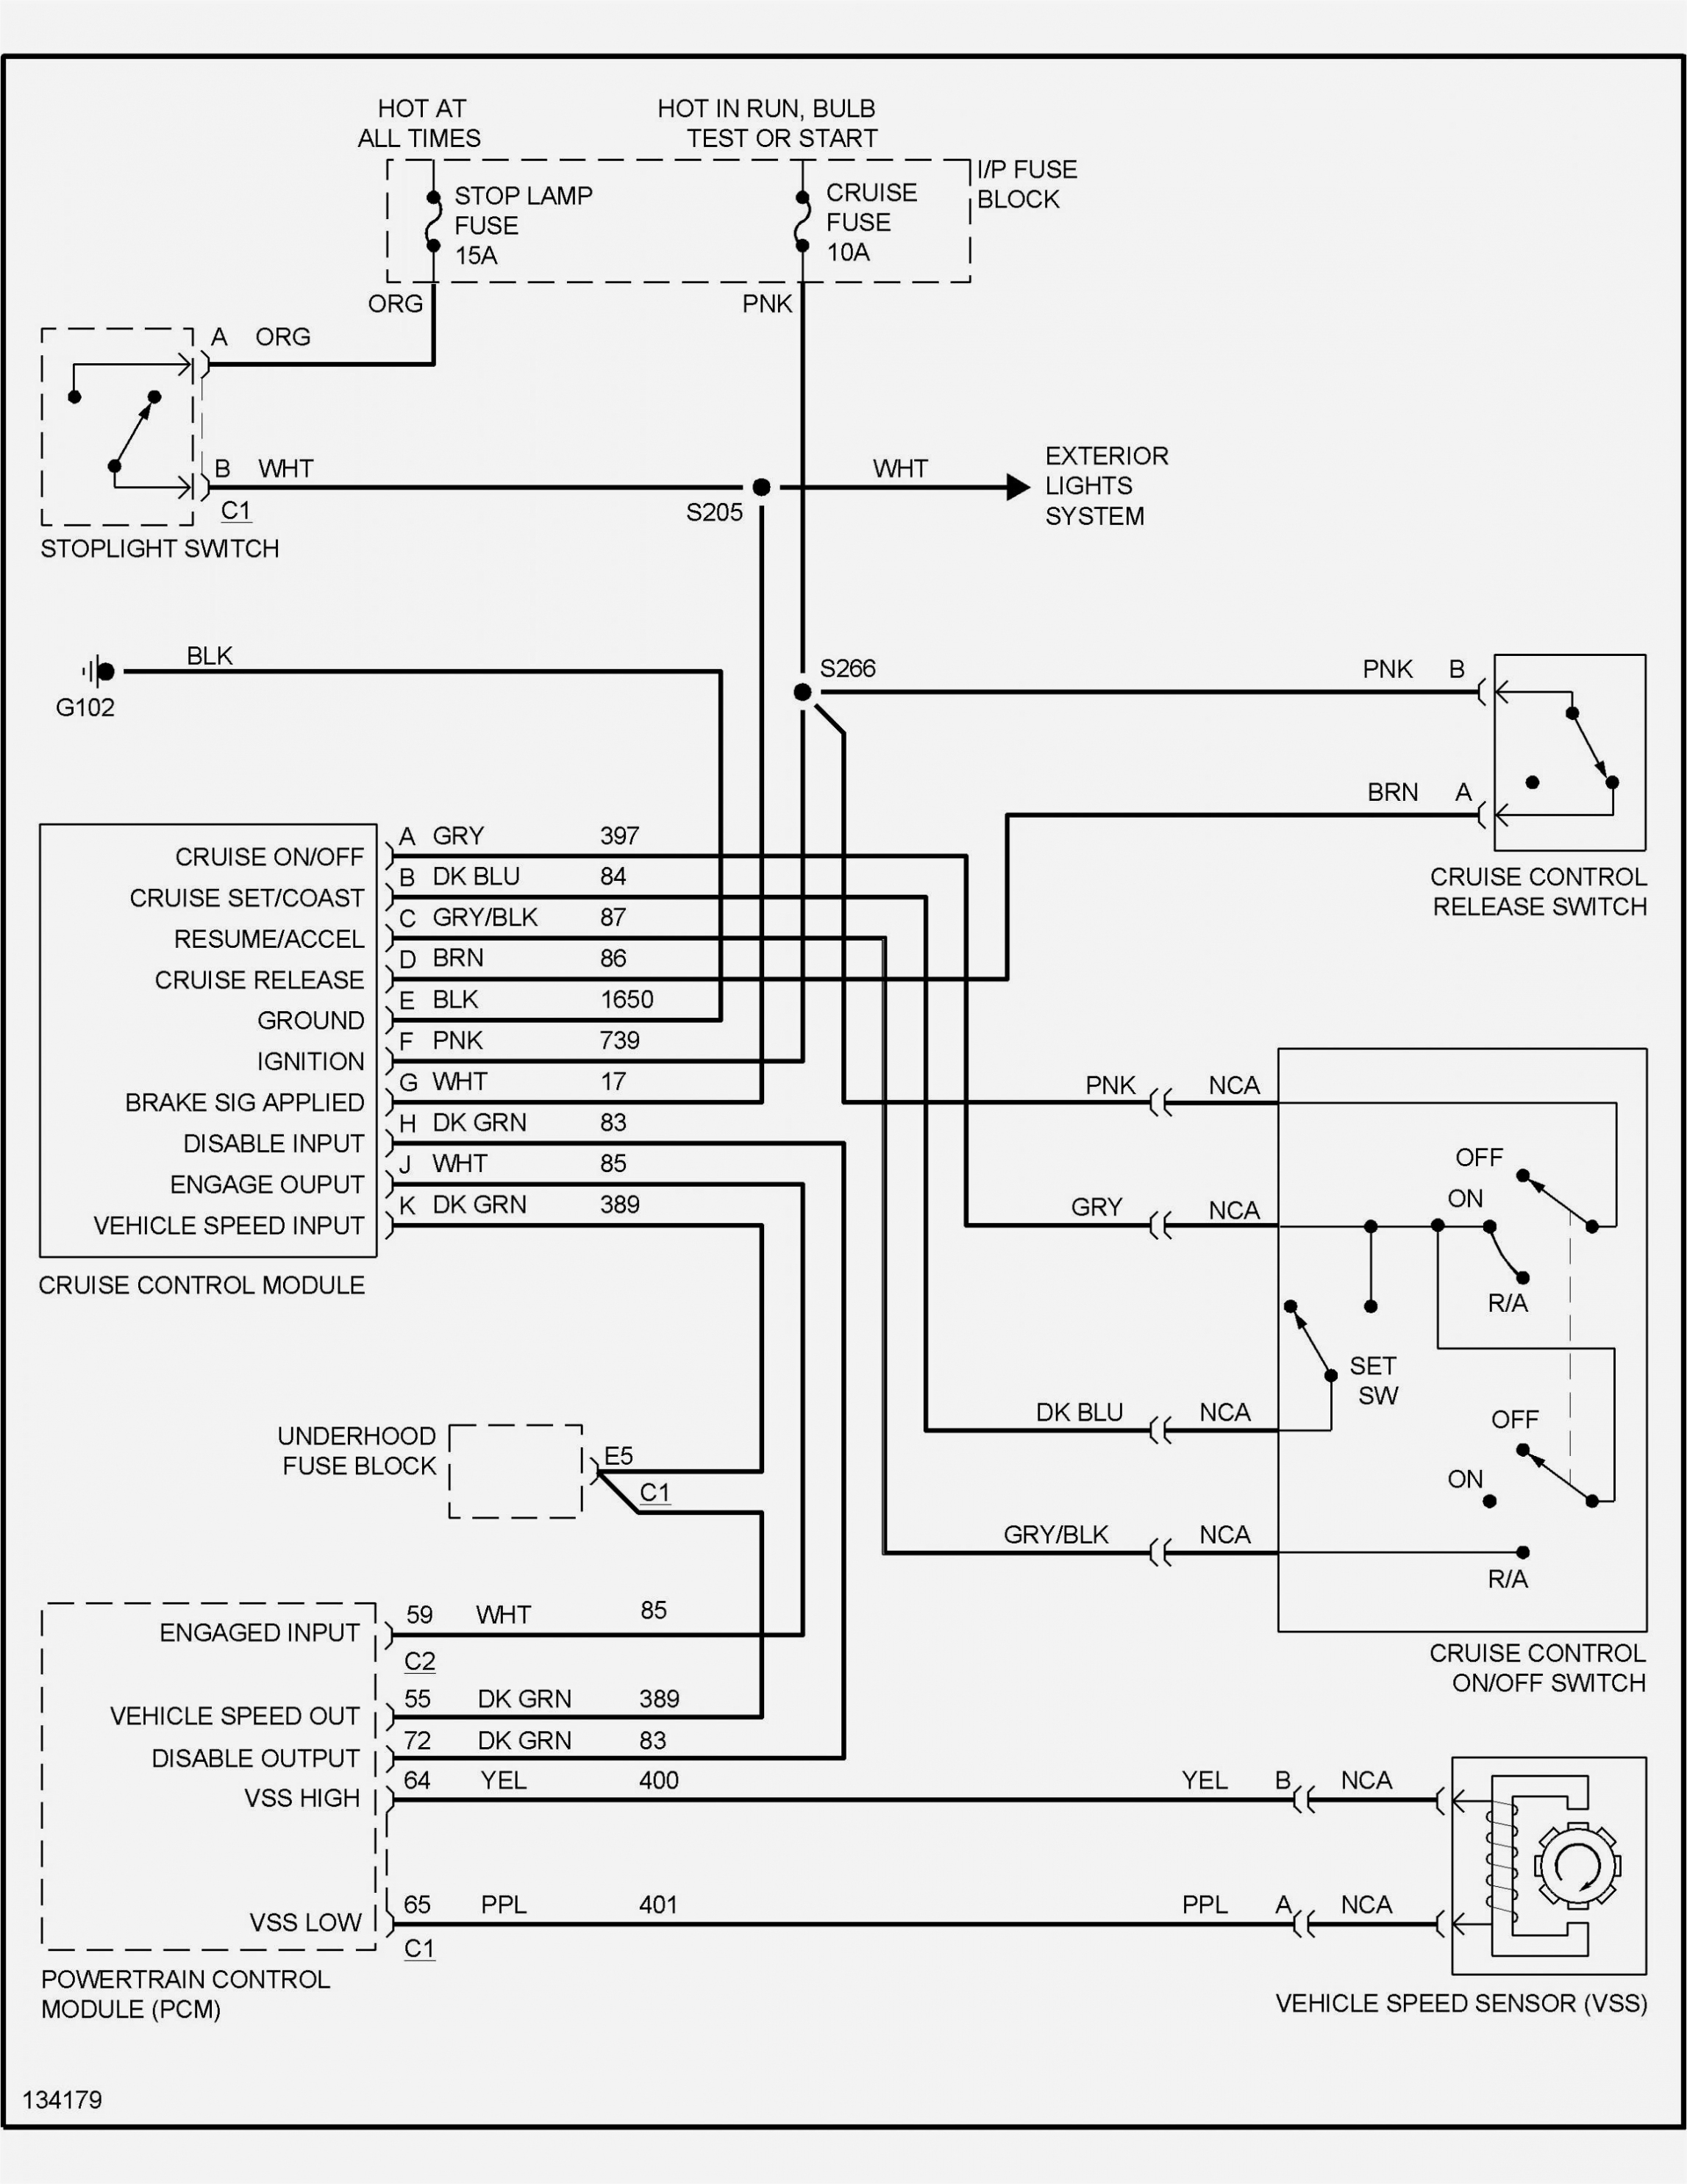 Sony Cdx Gt34W Wiring Schematics For Model | Wiring Diagram - Sony Xplod Car Stereo Wiring Diagram